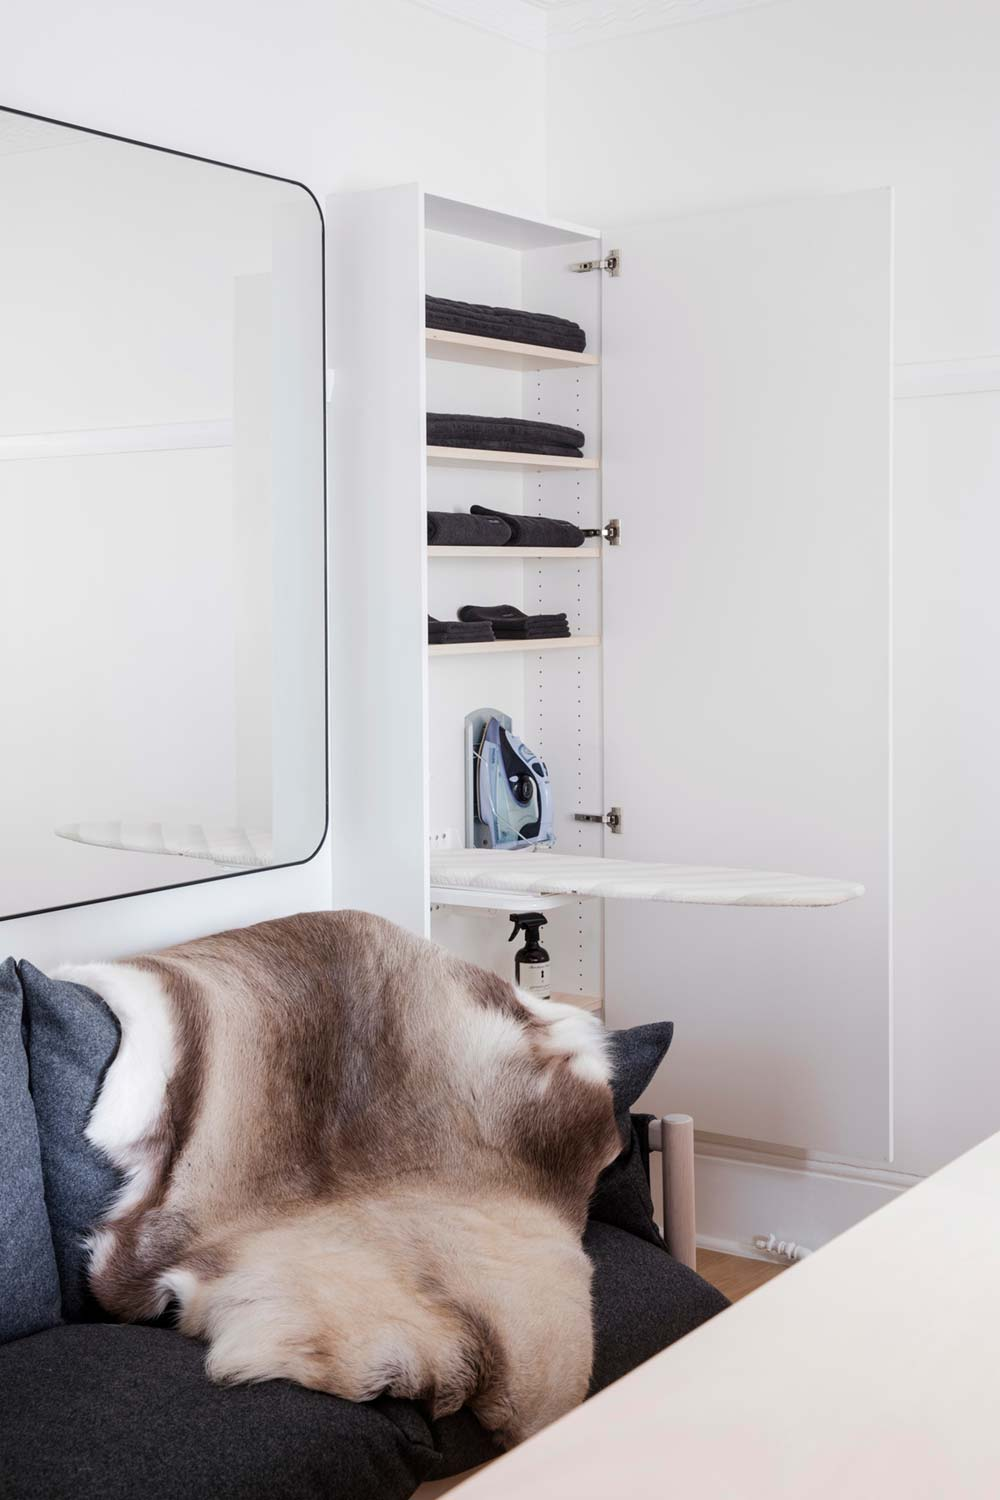 Tiny apartment storage ironing board cupboard